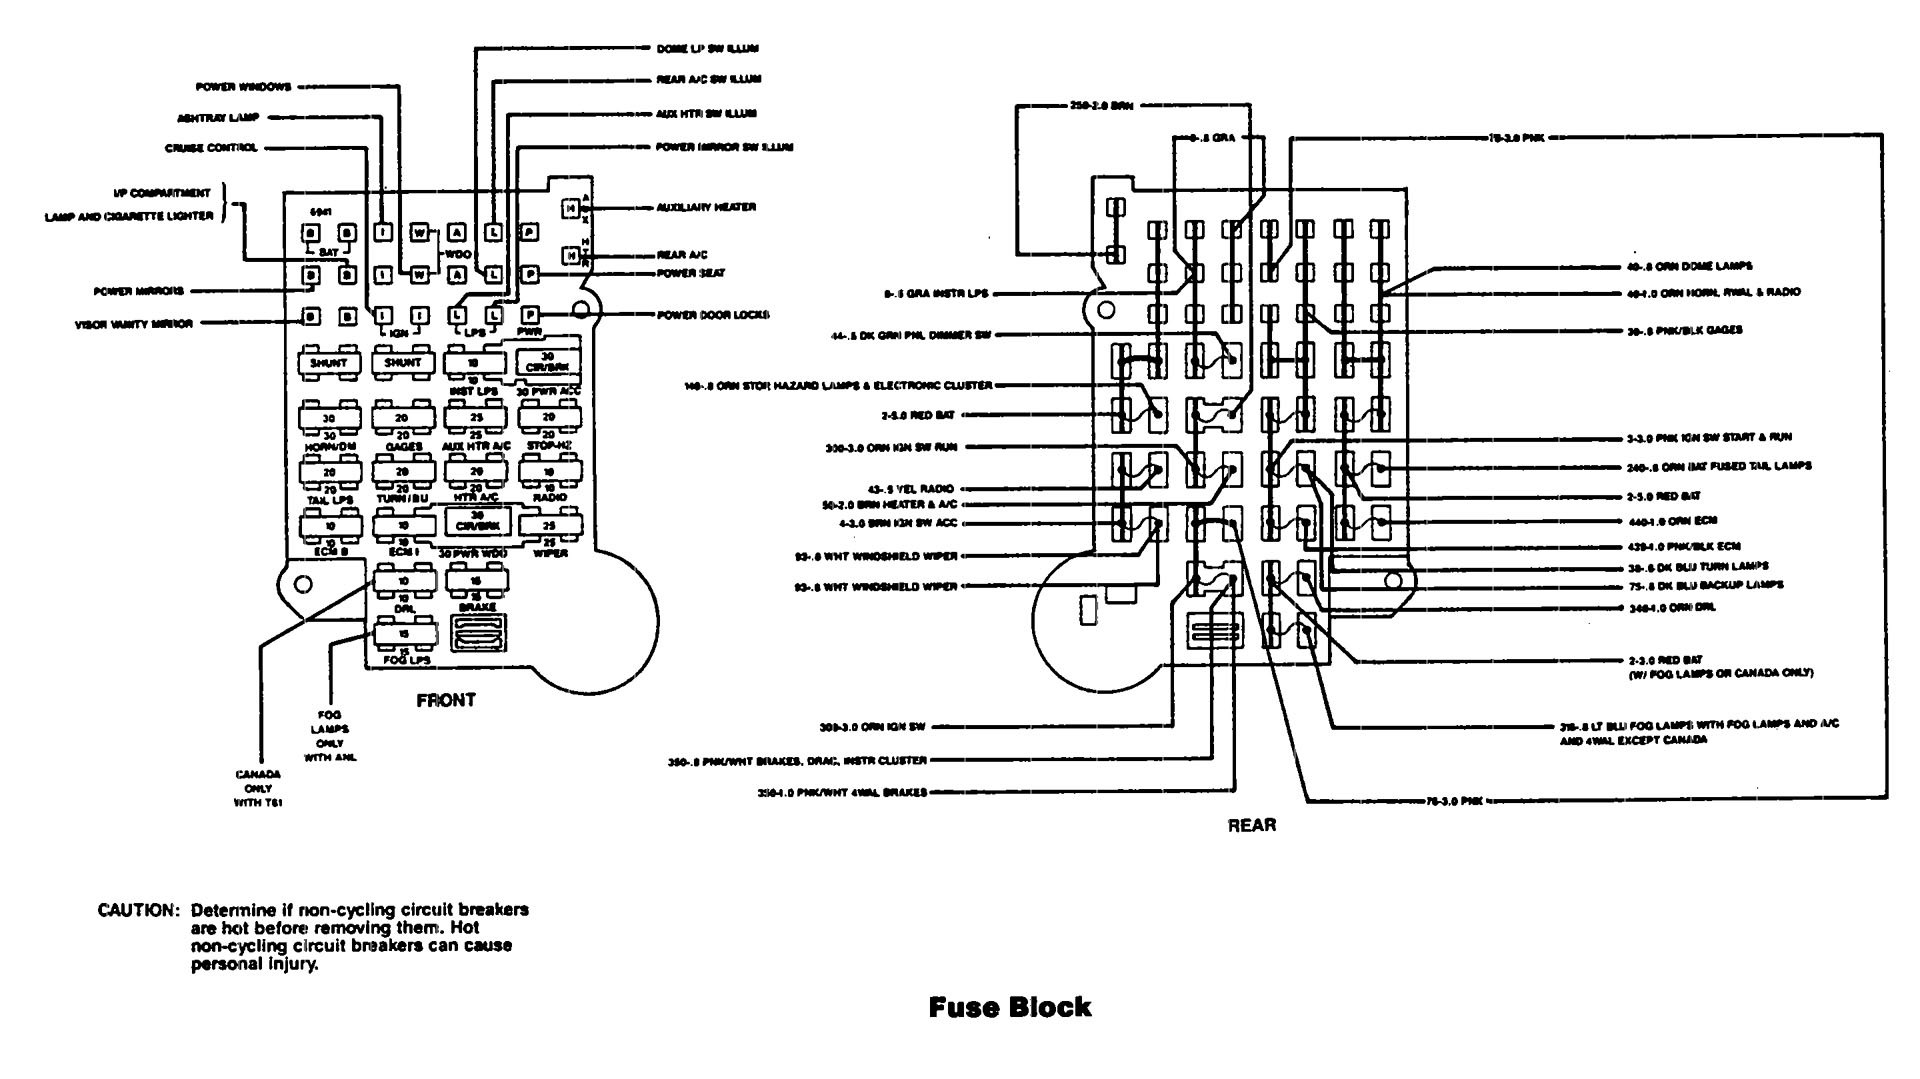 [DIAGRAM_4PO]  Chevrolet Astro (1991) - wiring diagrams - fuse box - Carknowledge.info | 1991 Aerostar Fuse Panel Diagram |  | Carknowledge.info